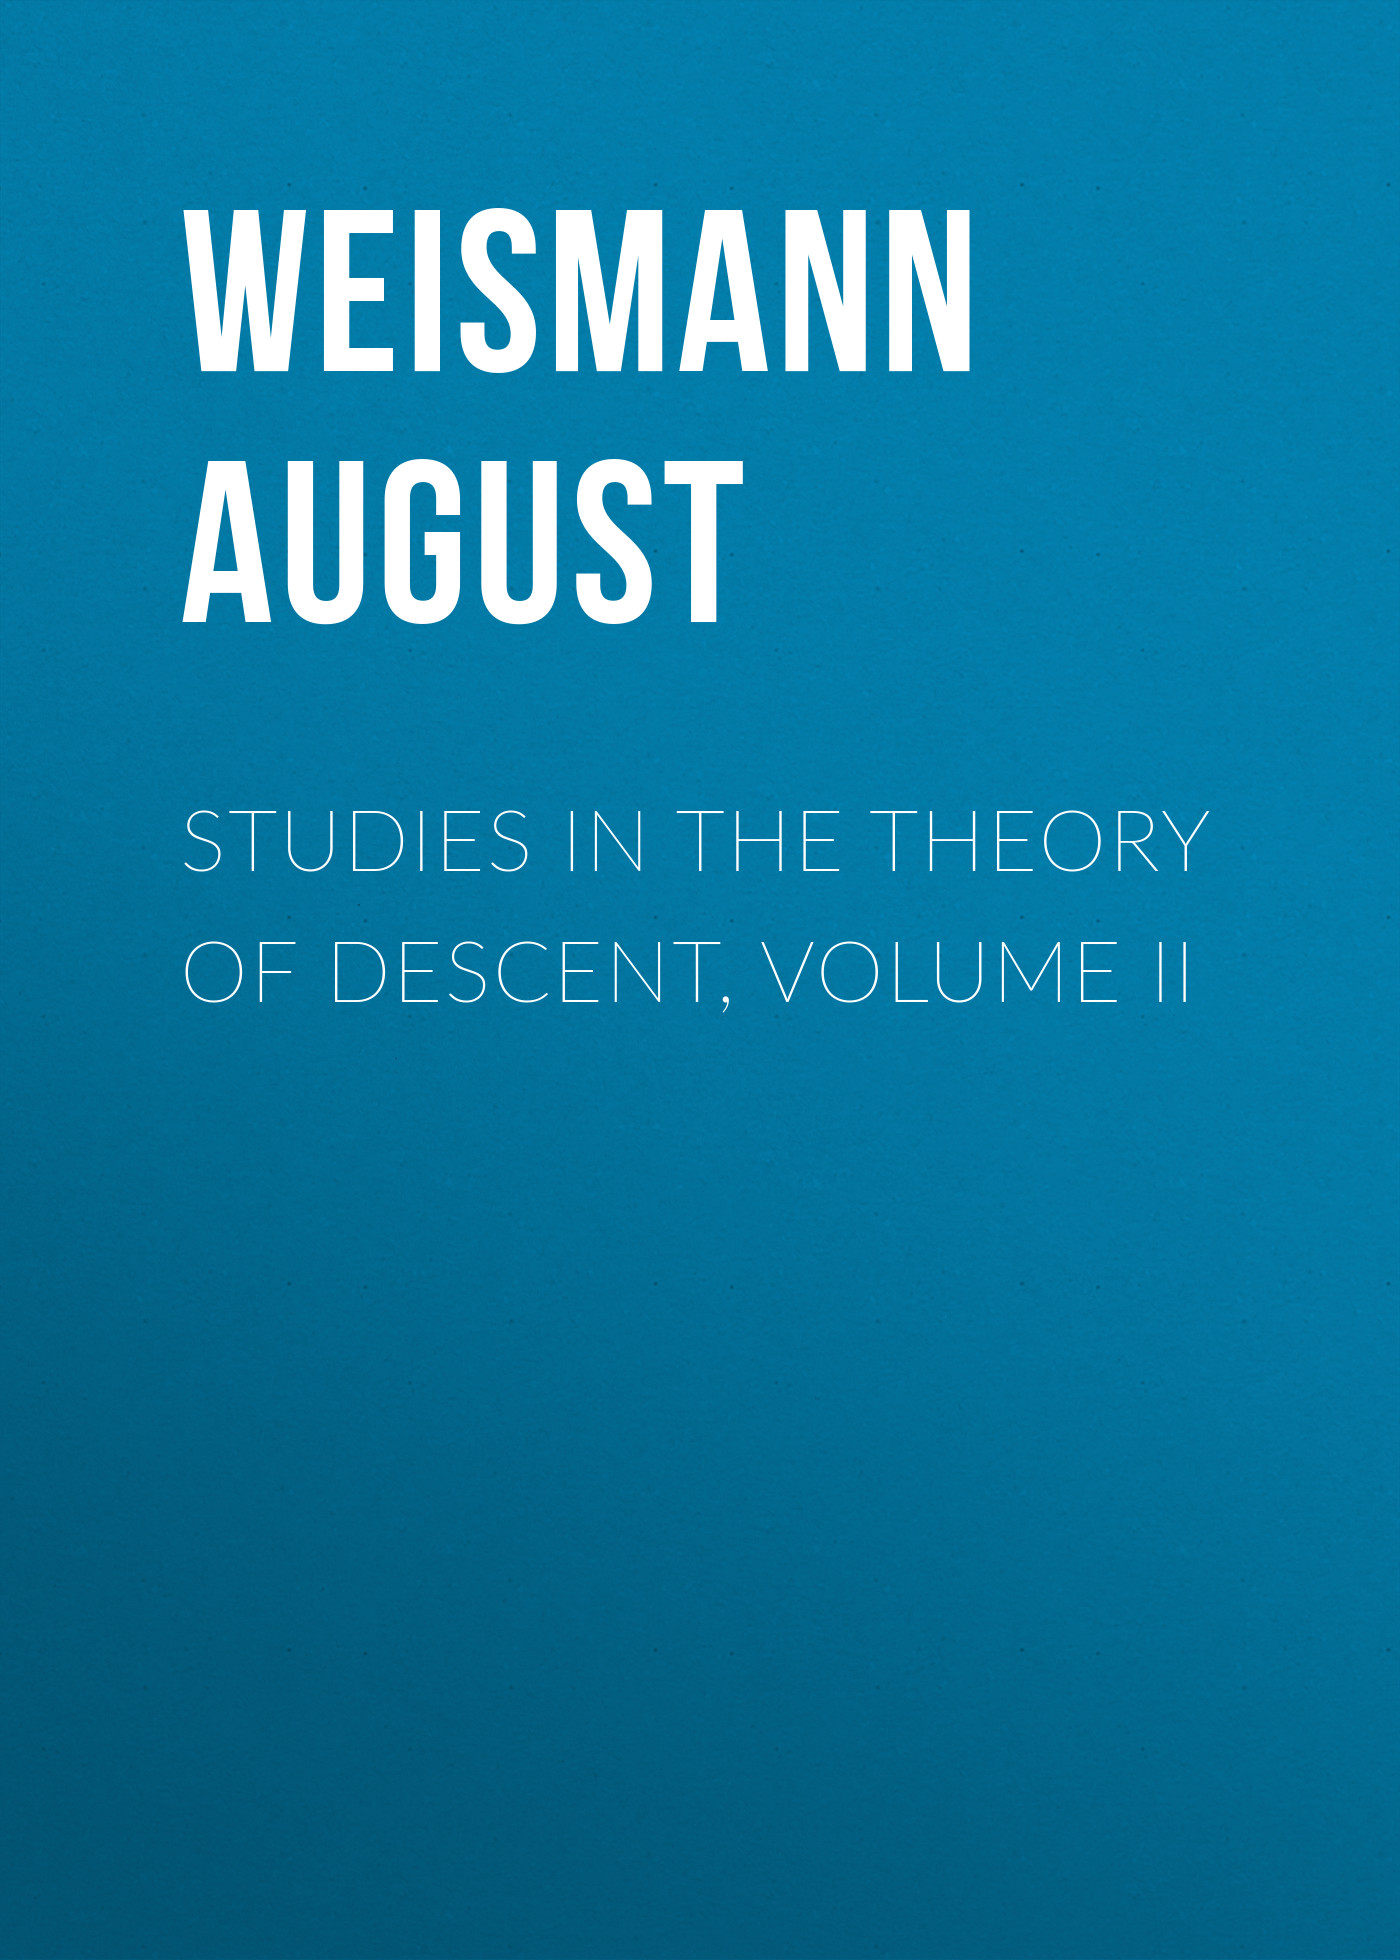 Weismann August Studies in the Theory of Descent, Volume II все цены